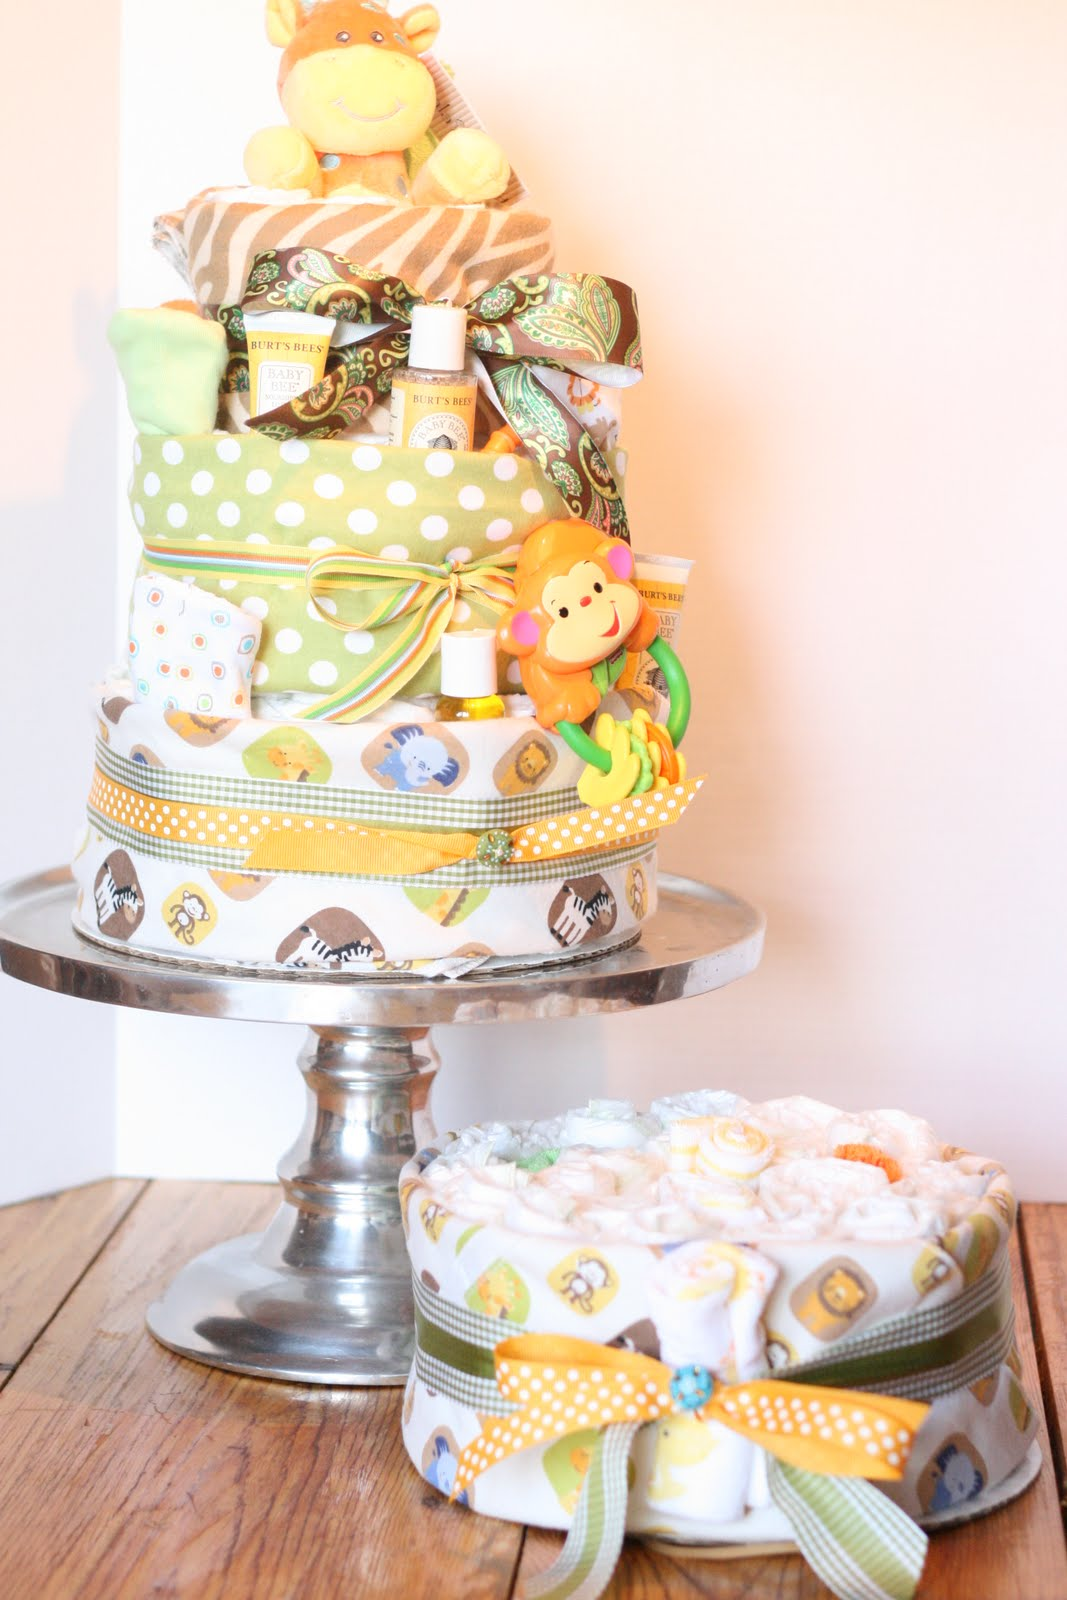 A Little Junk In My Trunk: How to Make a Diaper Cake